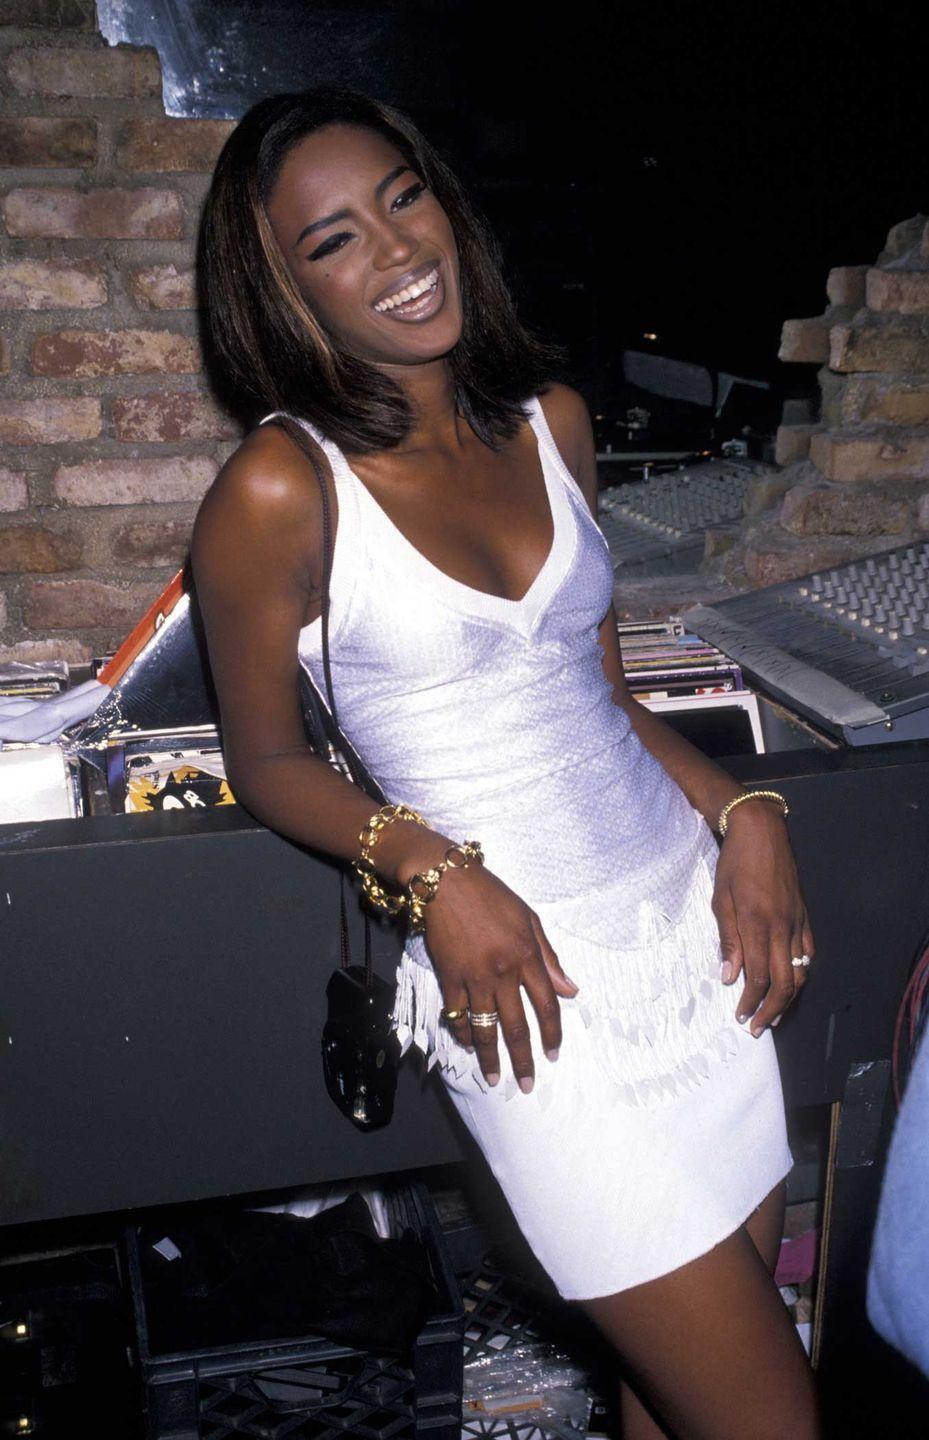 <p>Seen here in 1990 in New York City, Naomi Campbell looks flawless and so happy in her white-fringed outfit. </p>